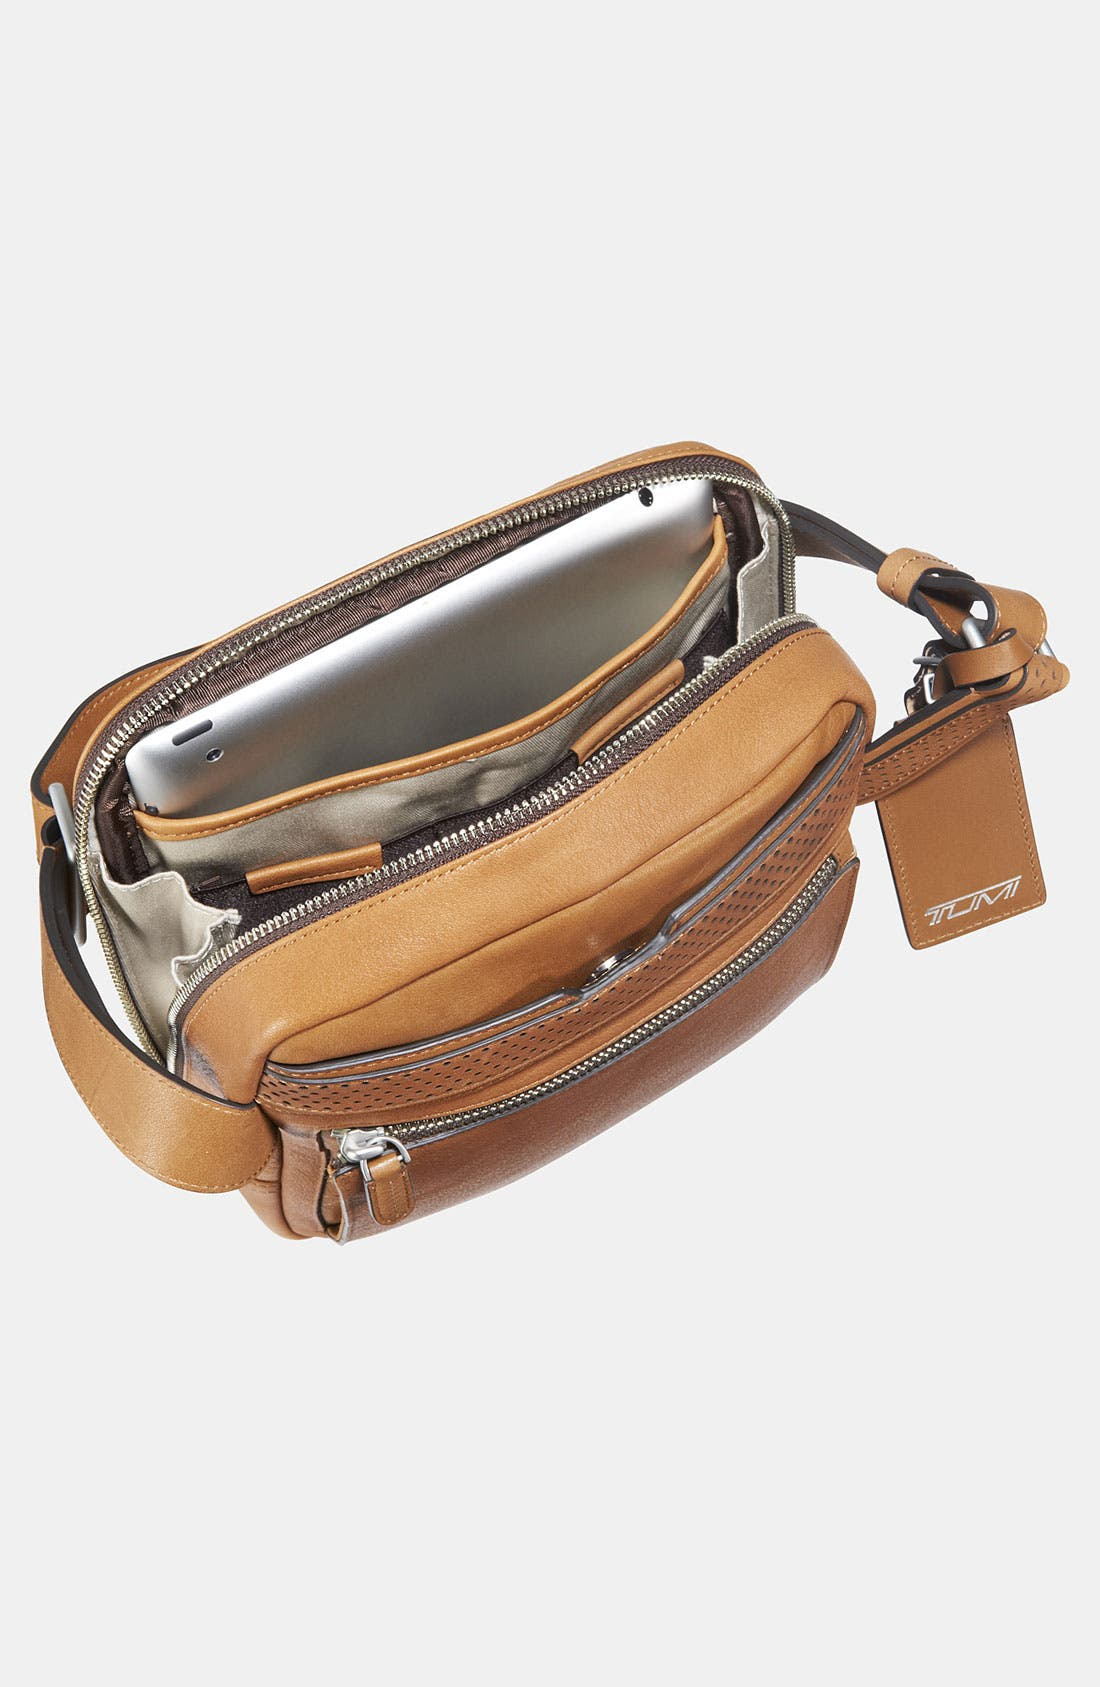 'Ducati Retro - Bronco' Crossbody Bag,                             Alternate thumbnail 5, color,                             219